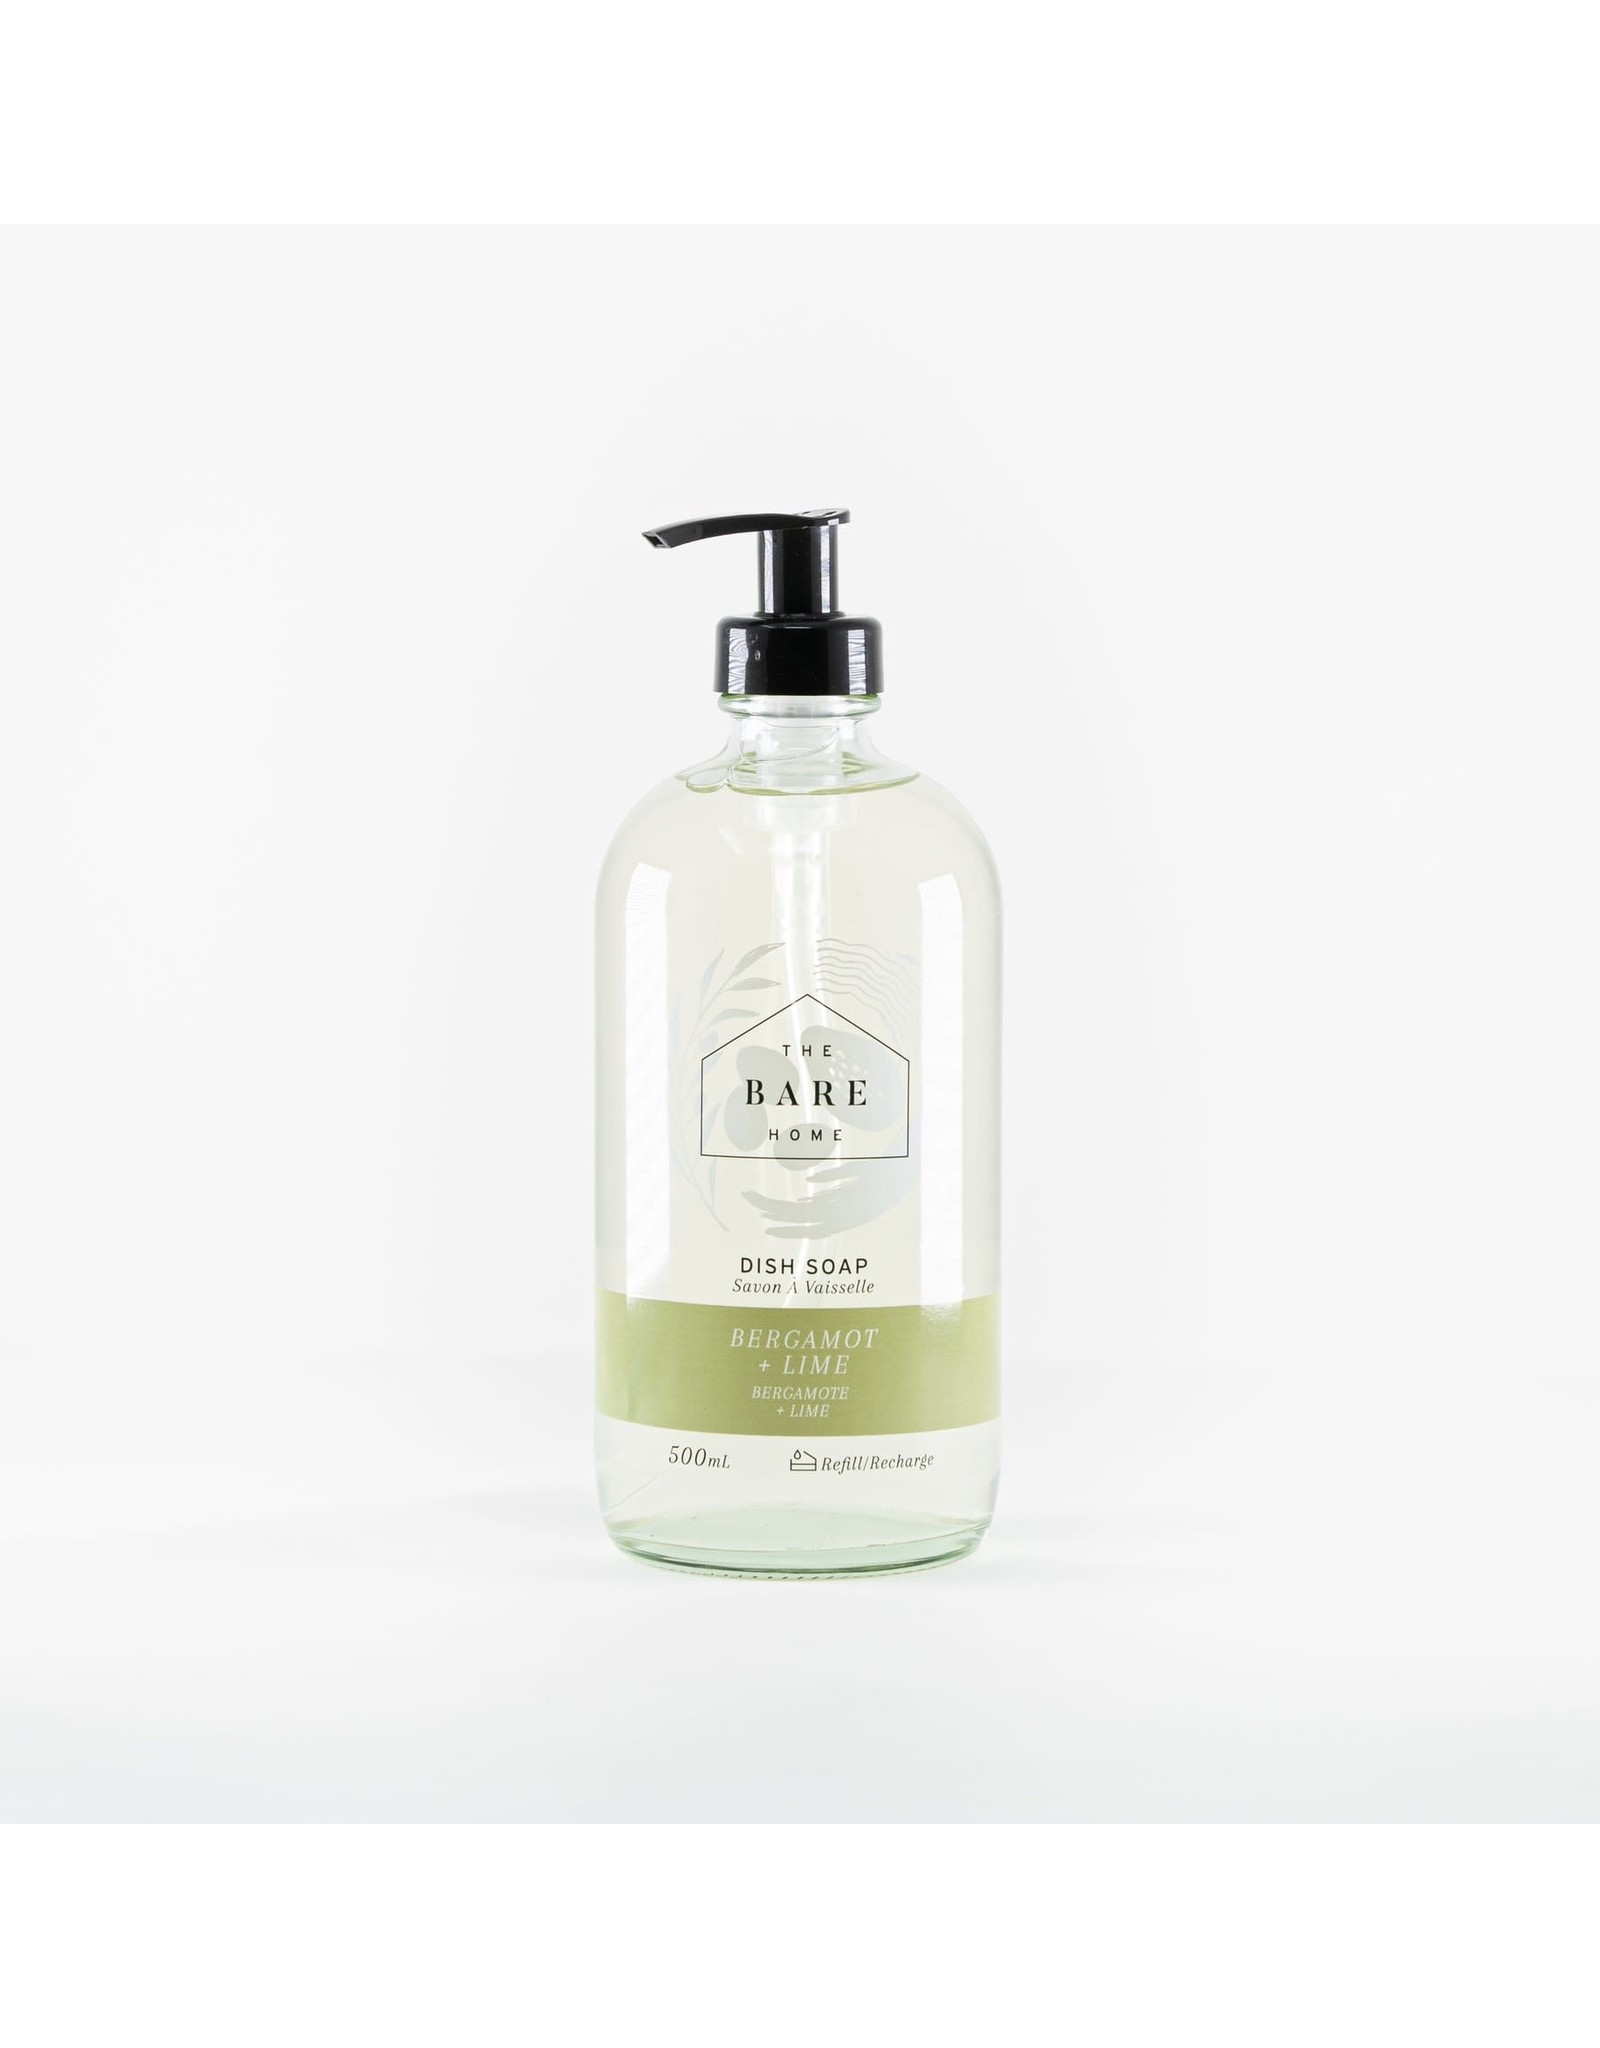 The Bare Home Liquid Dish Soap by The Bare Home